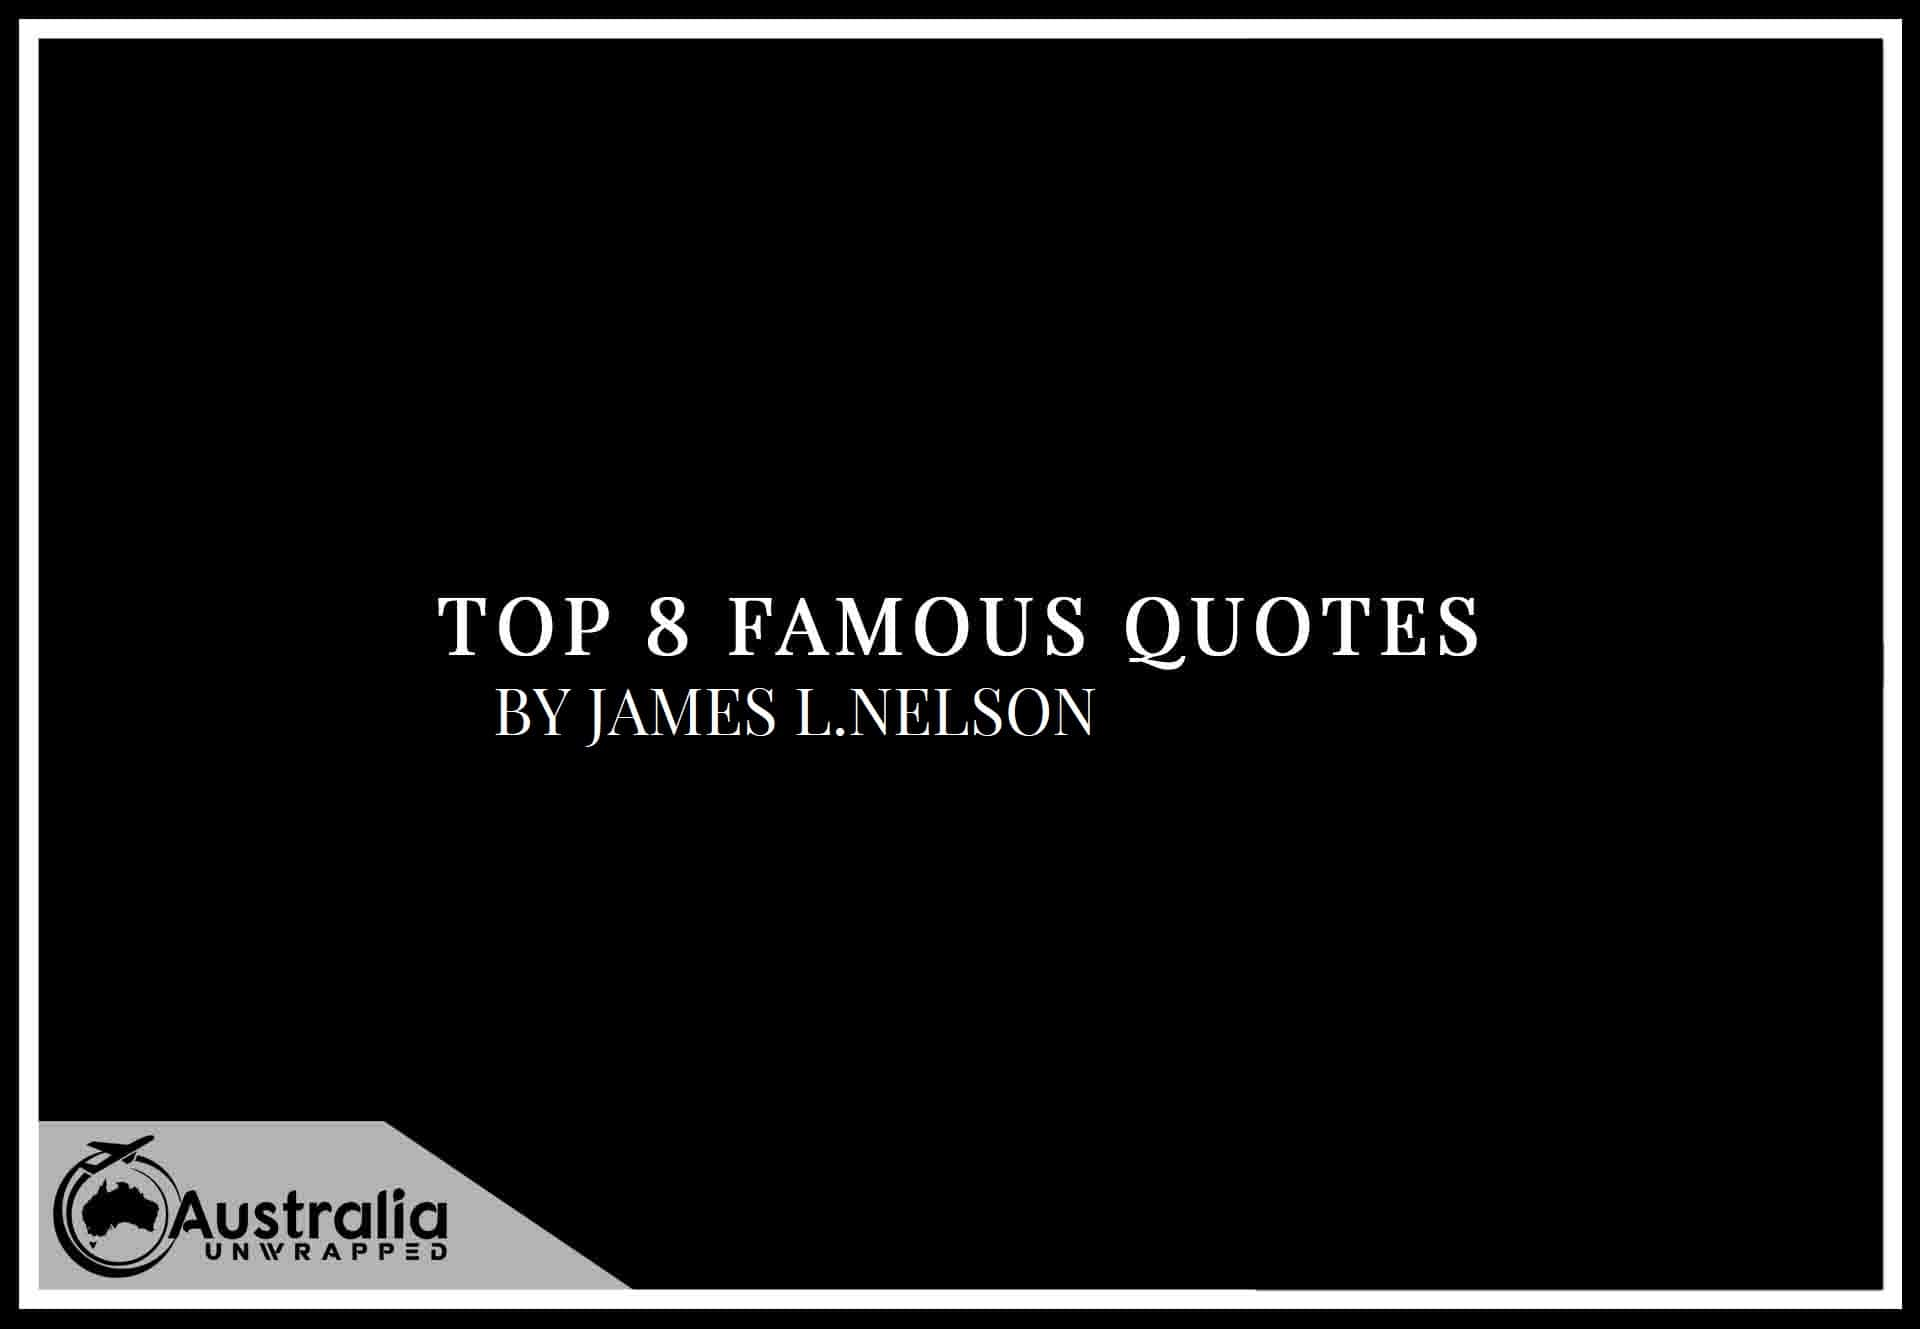 Top 8 Famous Quotes by Author James L. Nelson